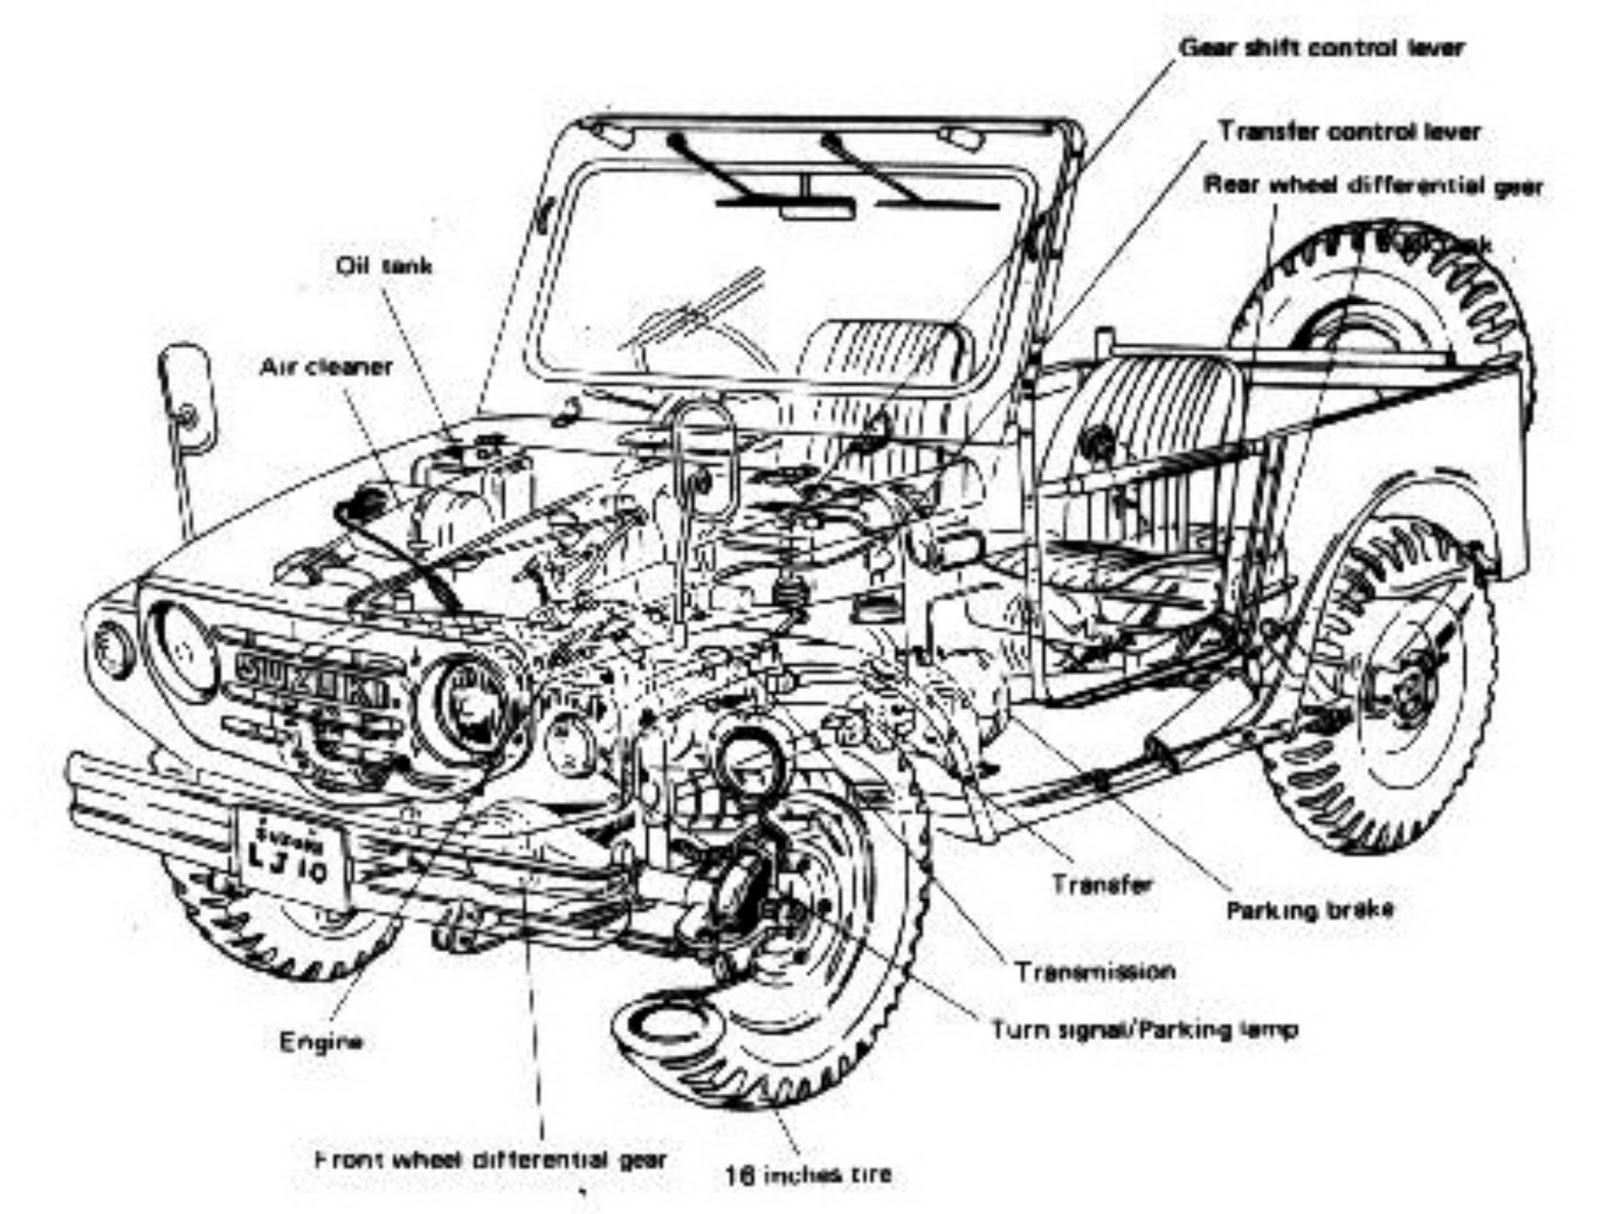 1989 suzuki samurai wiring diagram 1989 image wiring diagram suzuki jimny sj410 wiring diagrams and schematics on 1989 suzuki samurai wiring diagram